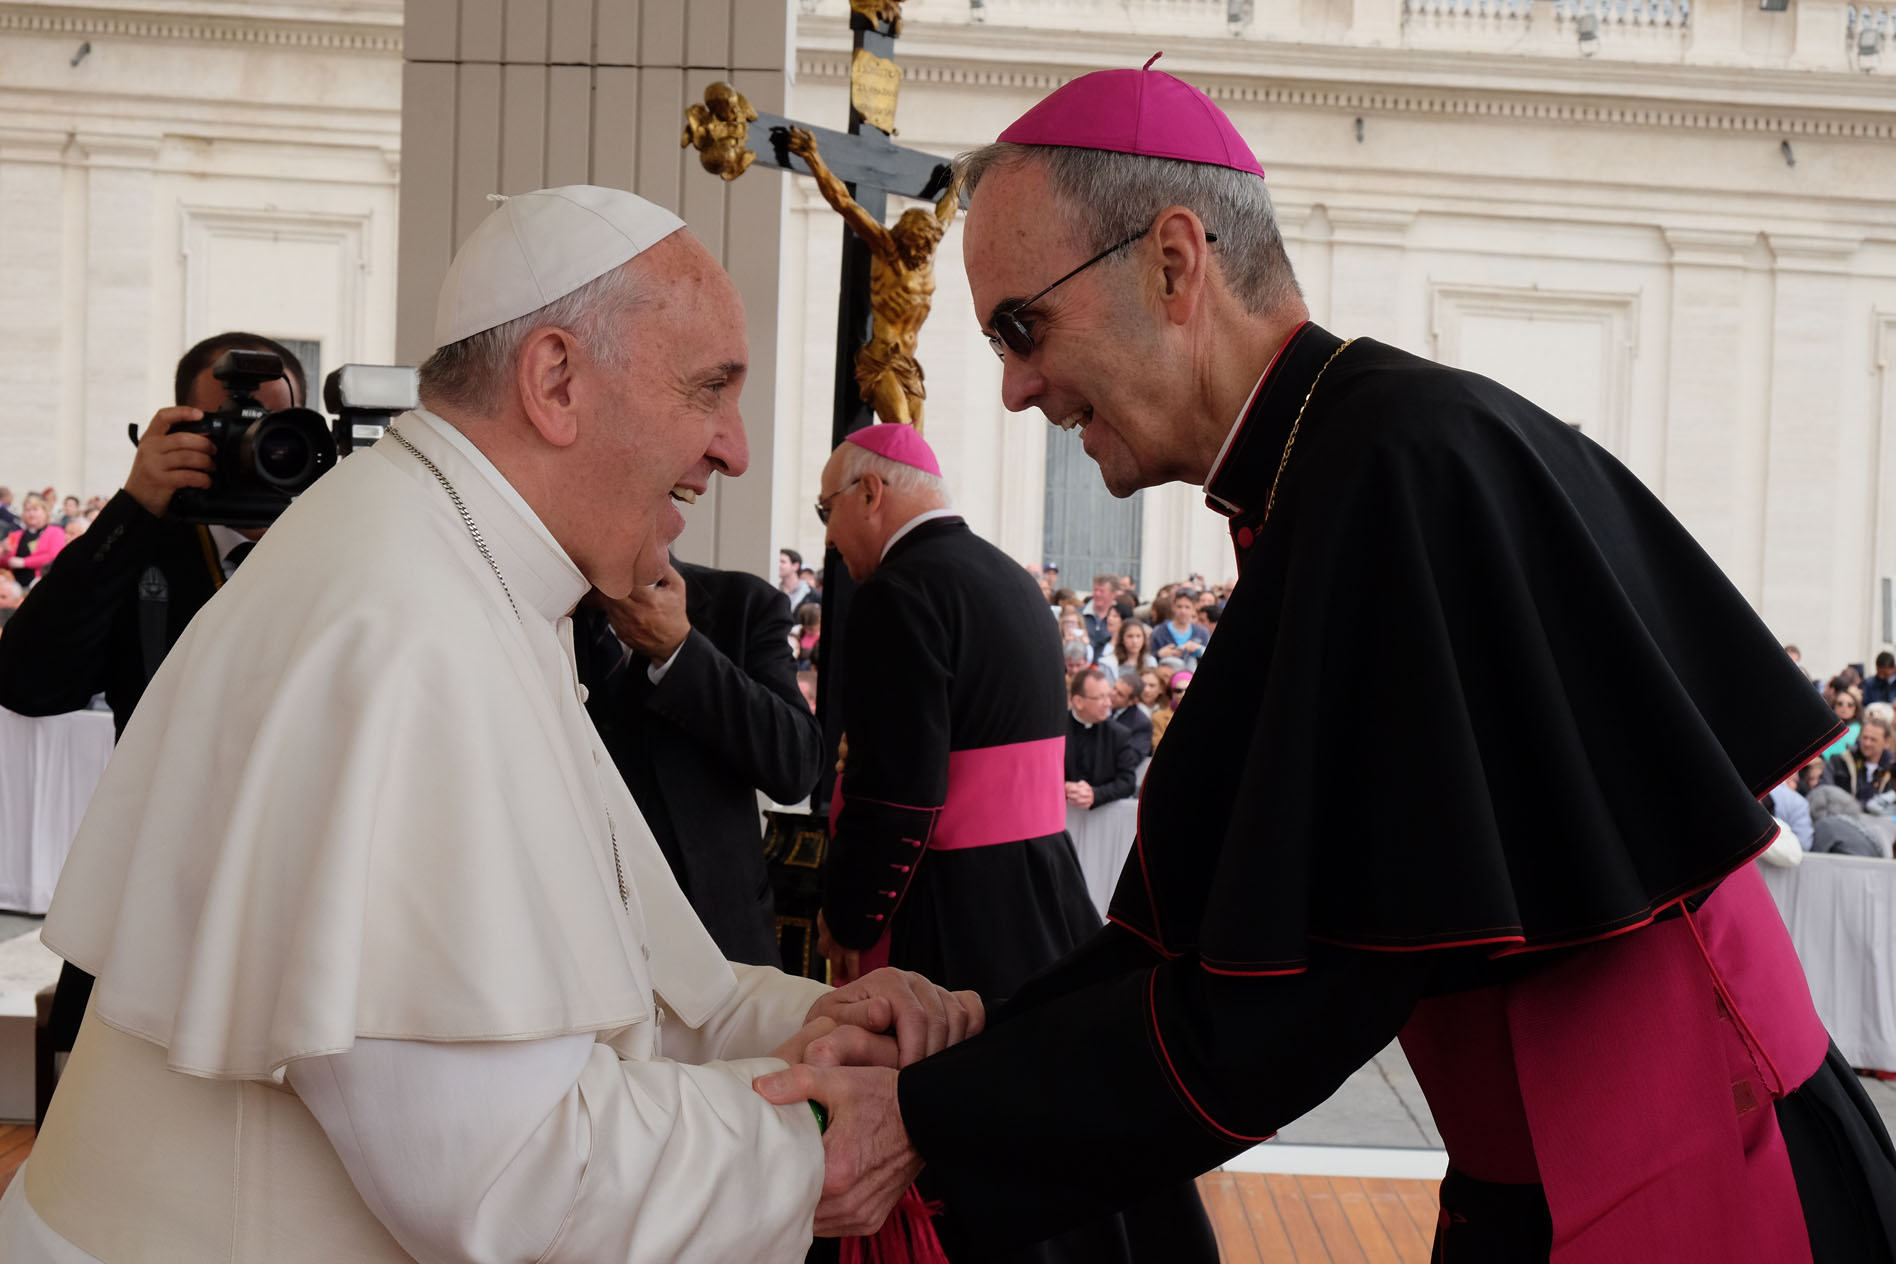 Pope Francis greets Bishop Paul Sanchez